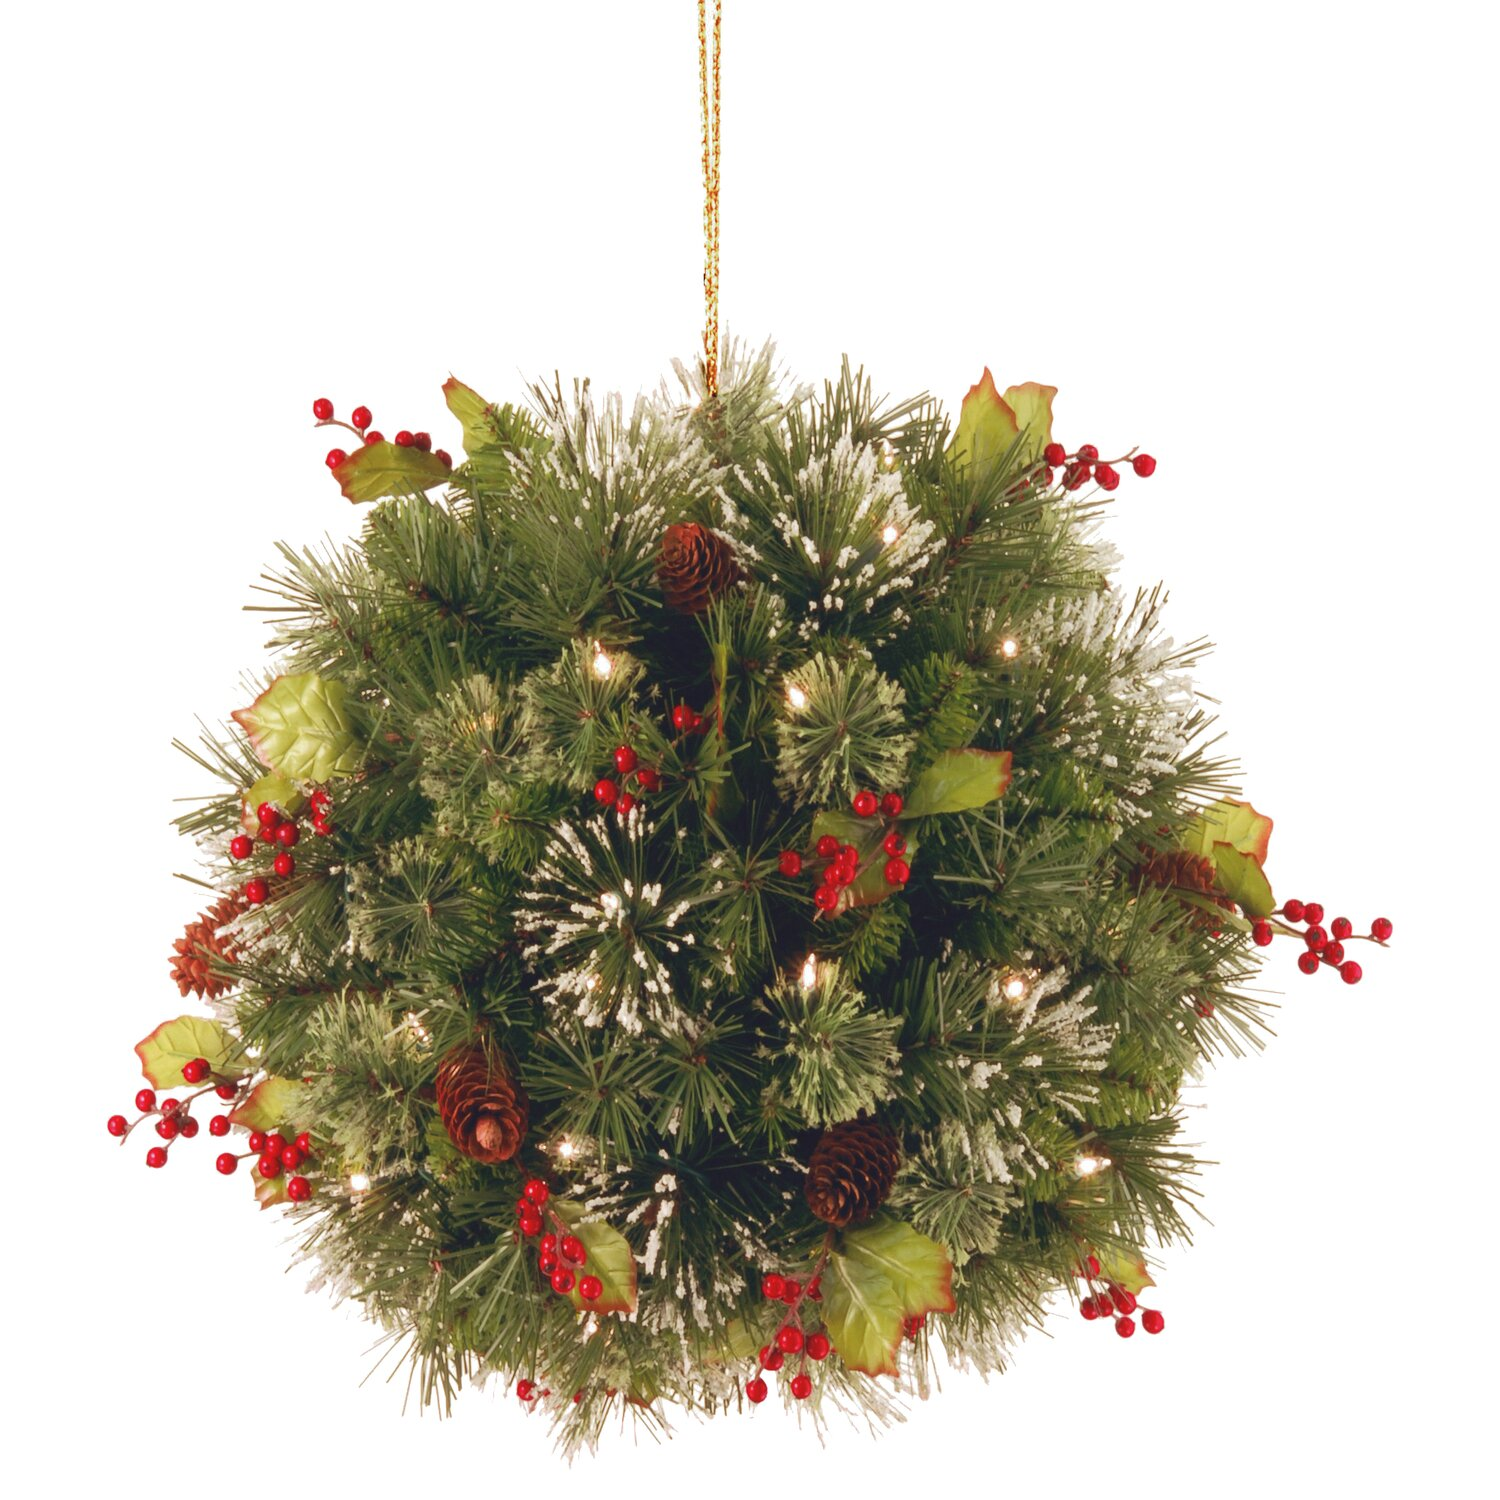 Best Pre Lit Christmas Hanging Baskets With Led Lights